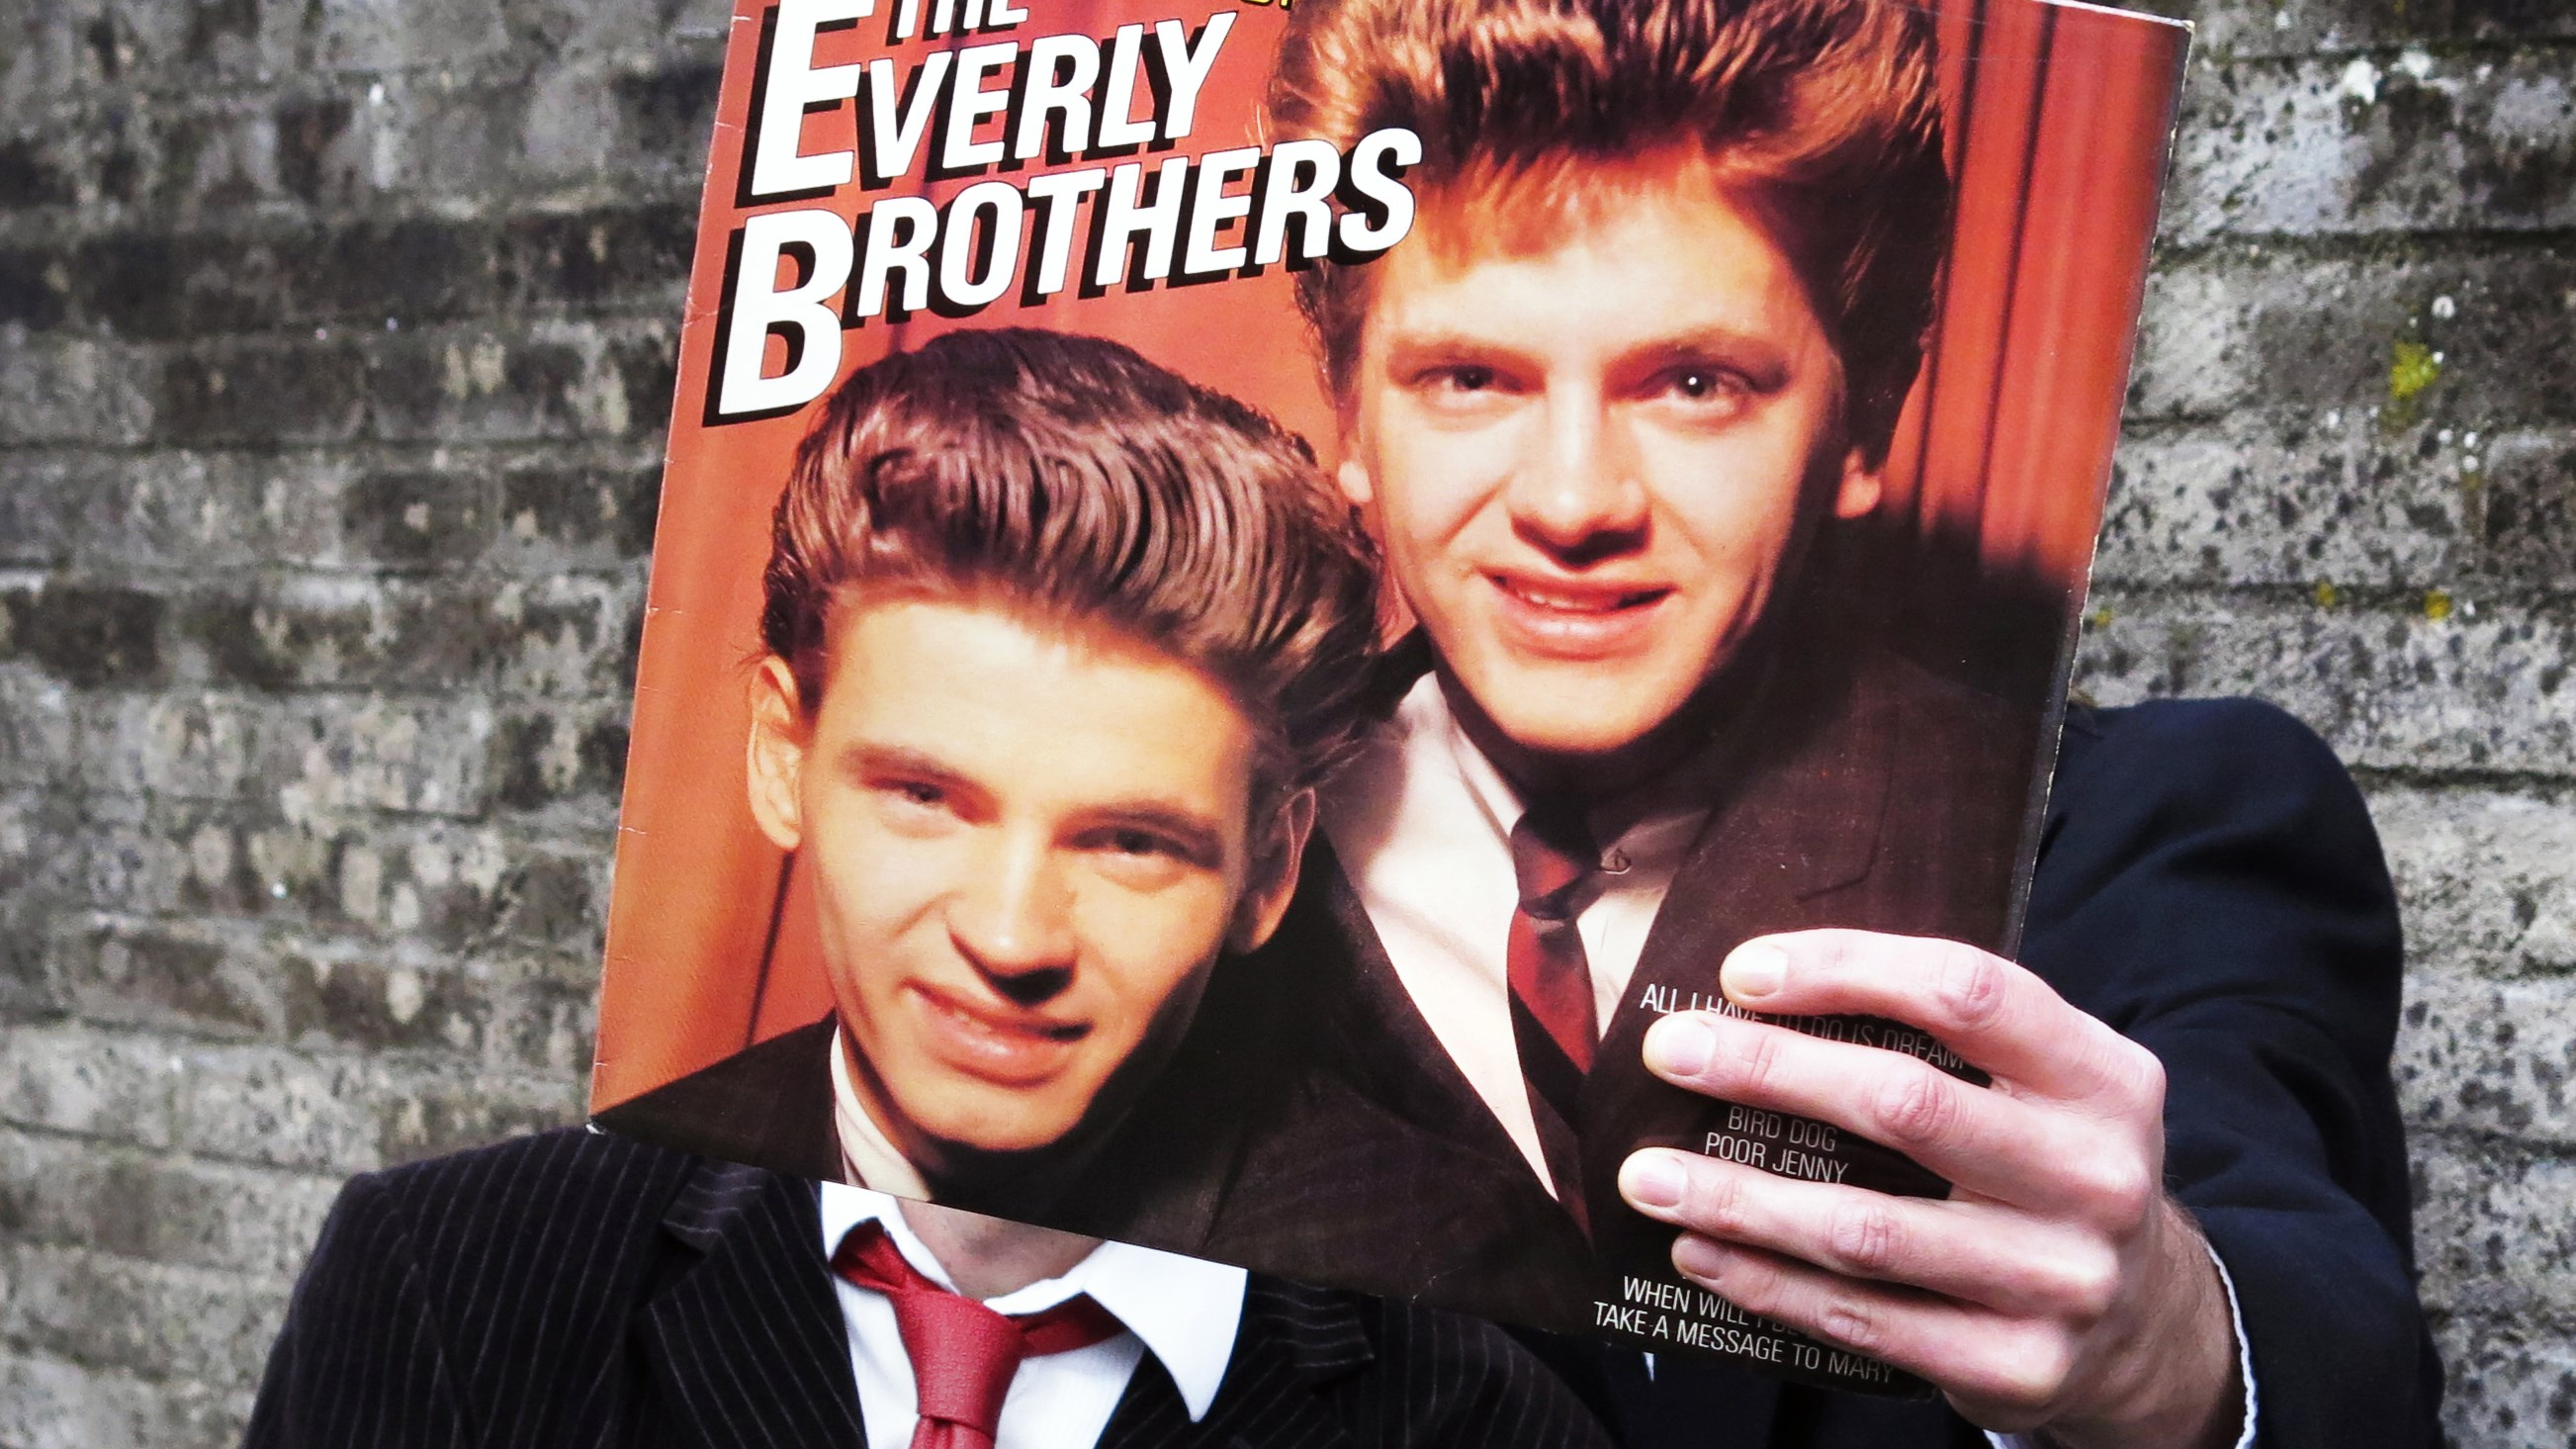 The Wieners - The Wieners play the Everly Brothers - (Gijsbert van der Wal) - campagnebeeld liggend.jpg